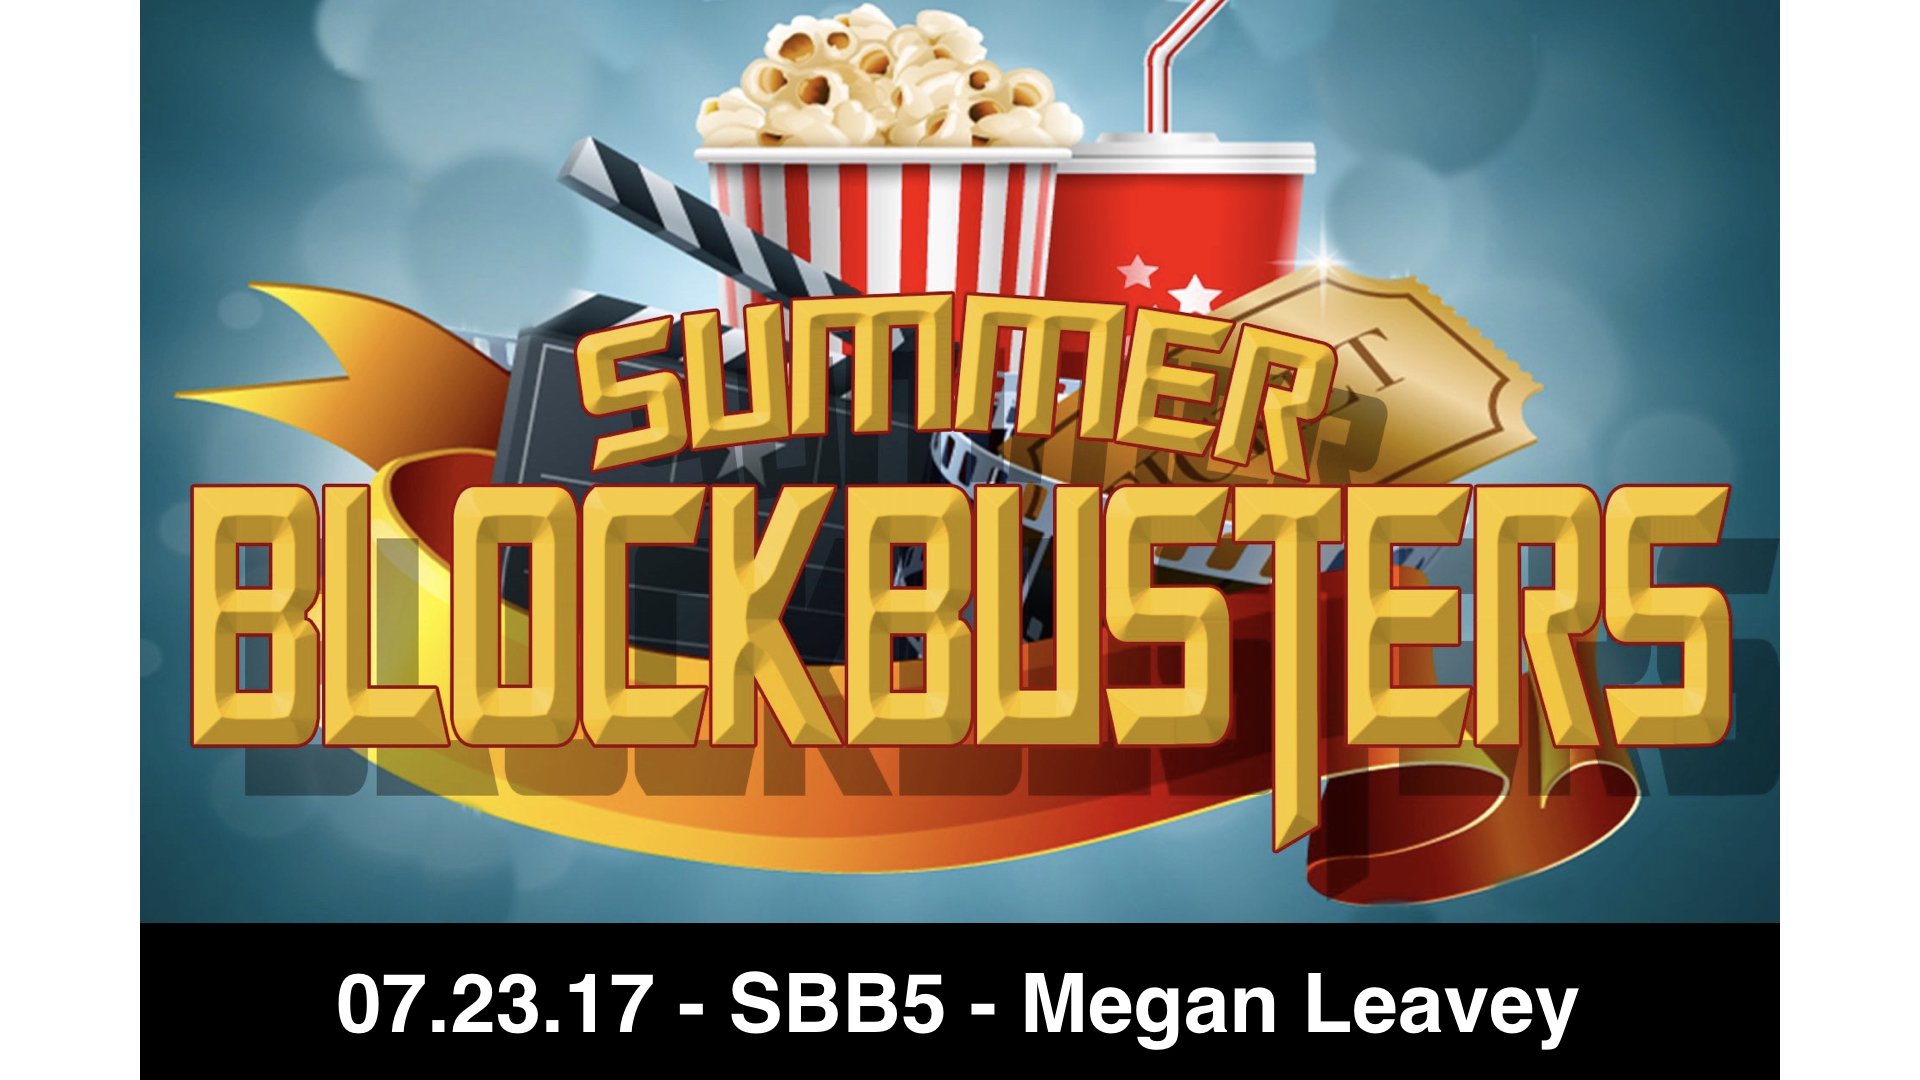 07-23-17 - SBB5 - Megan Leavey